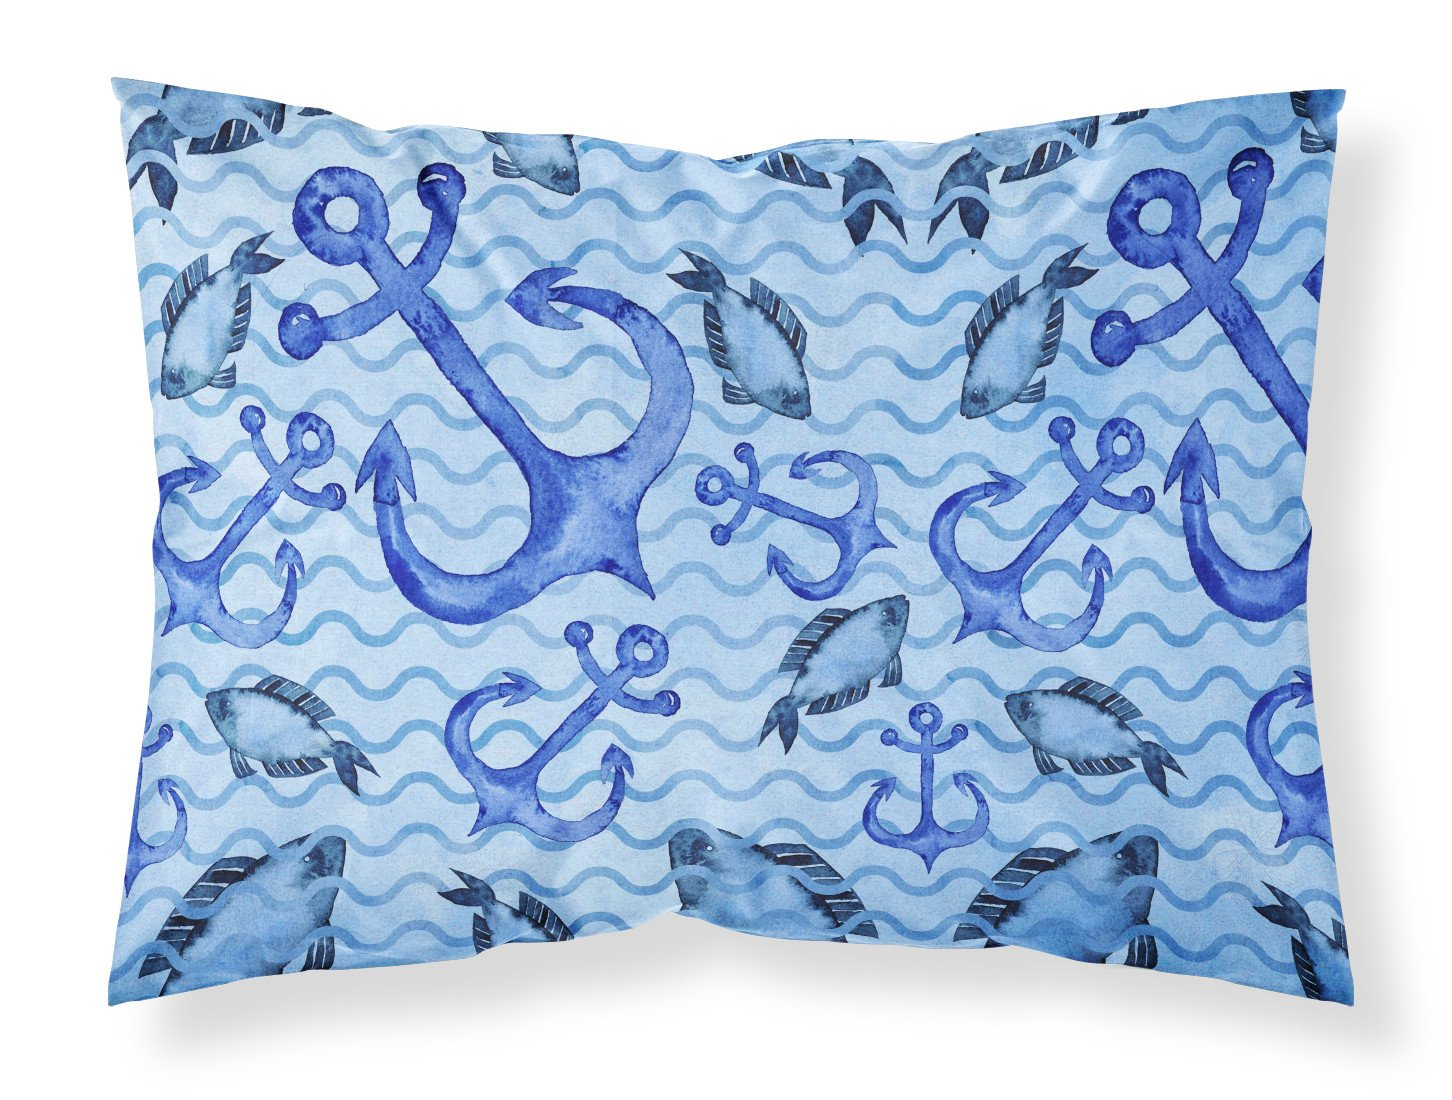 Buy this Beach Watercolor Anchors and Fish Fabric Standard Pillowcase BB7534PILLOWCASE